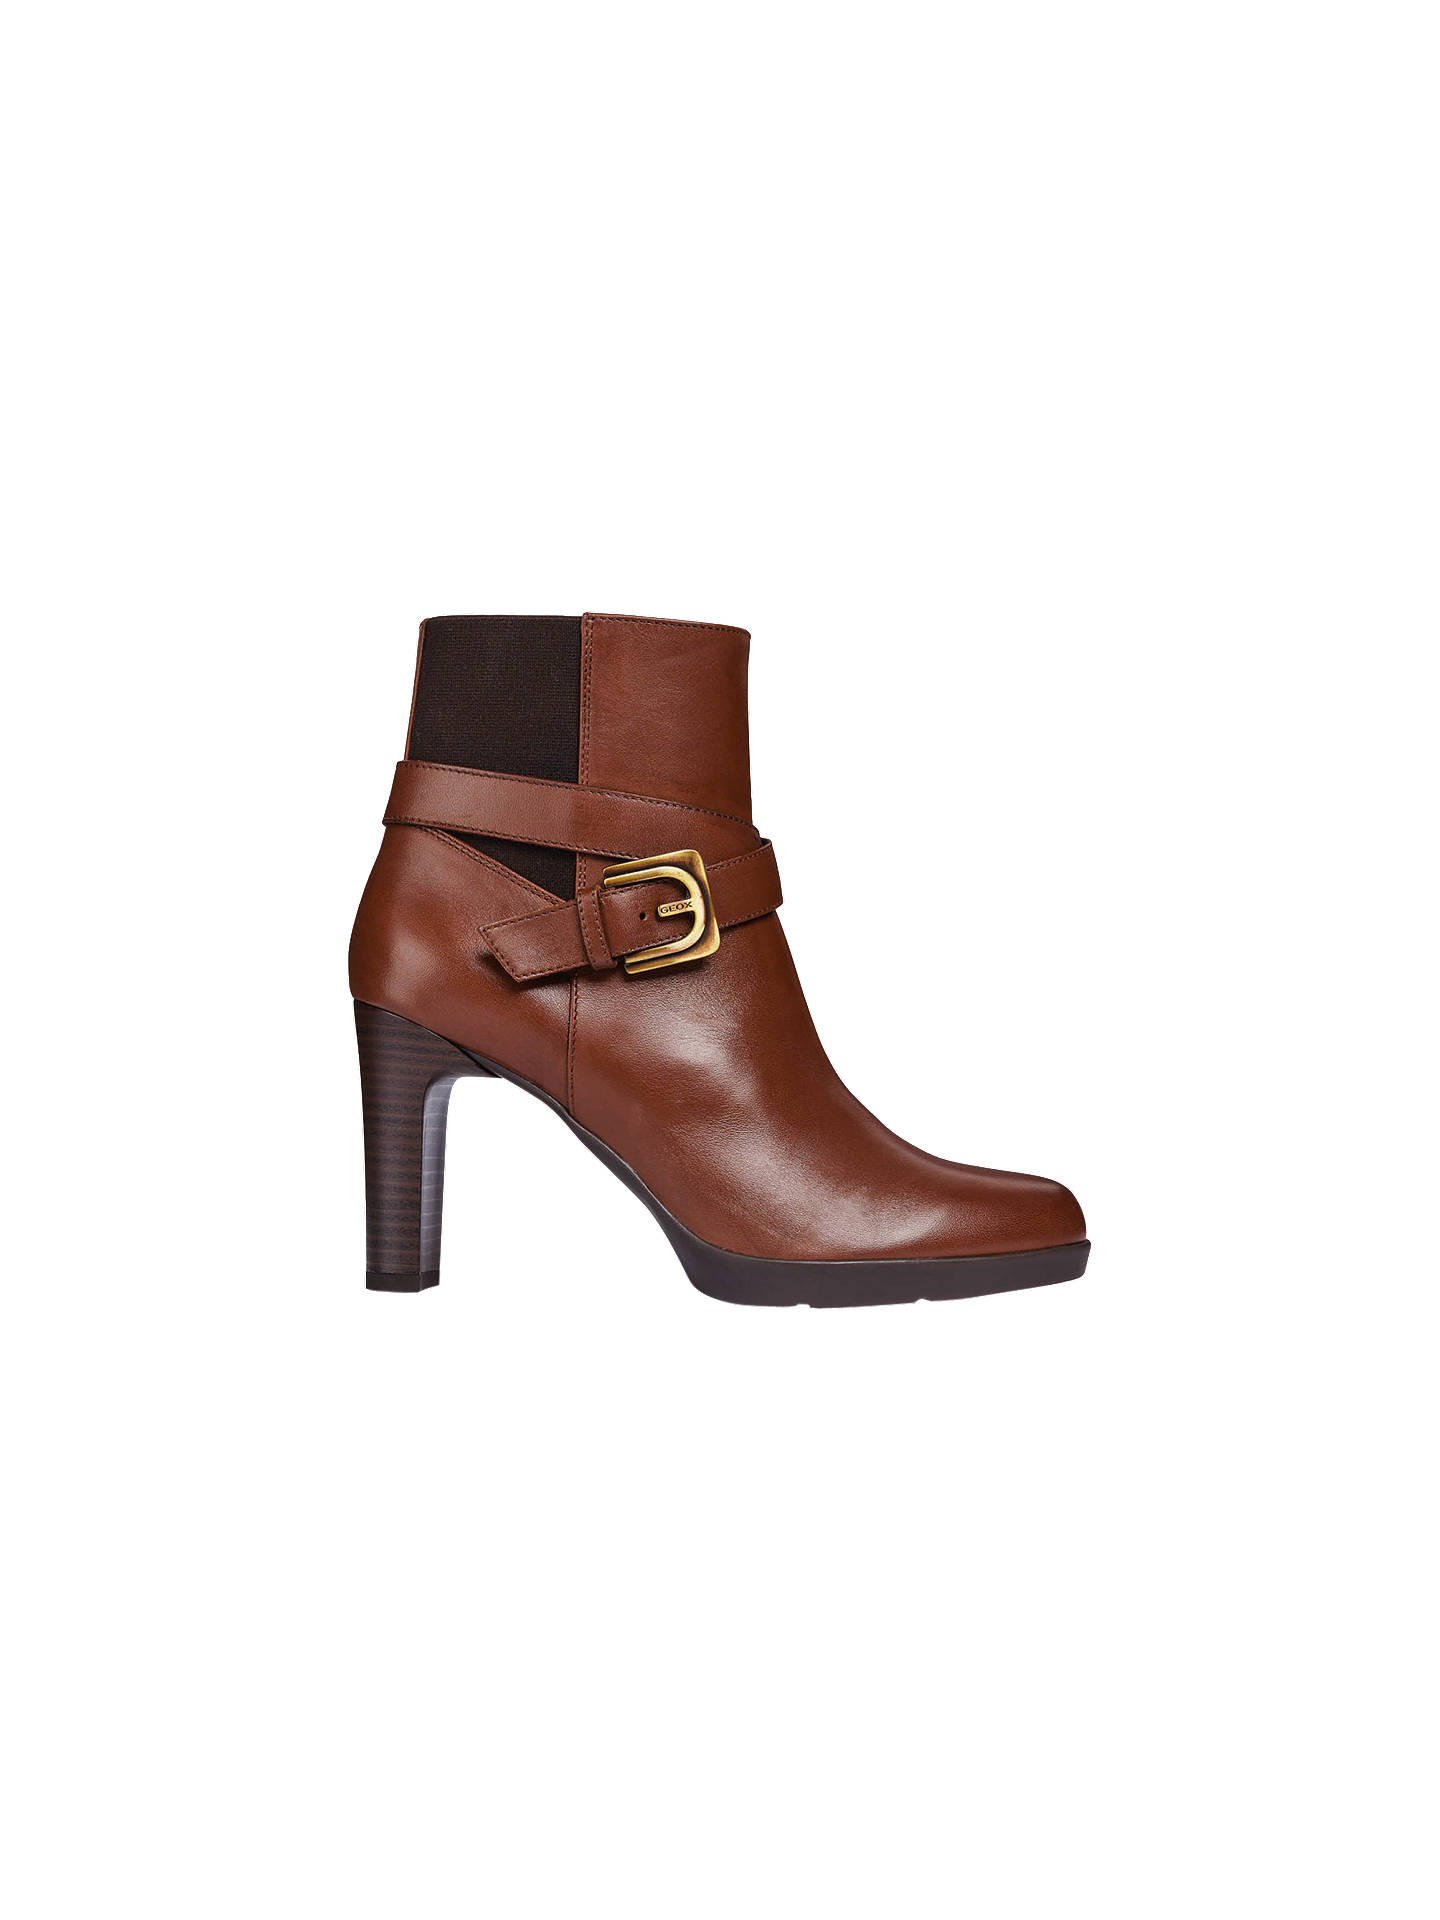 Geox Annya Mid Block Heel Ankle Boots, Brown Leather at John